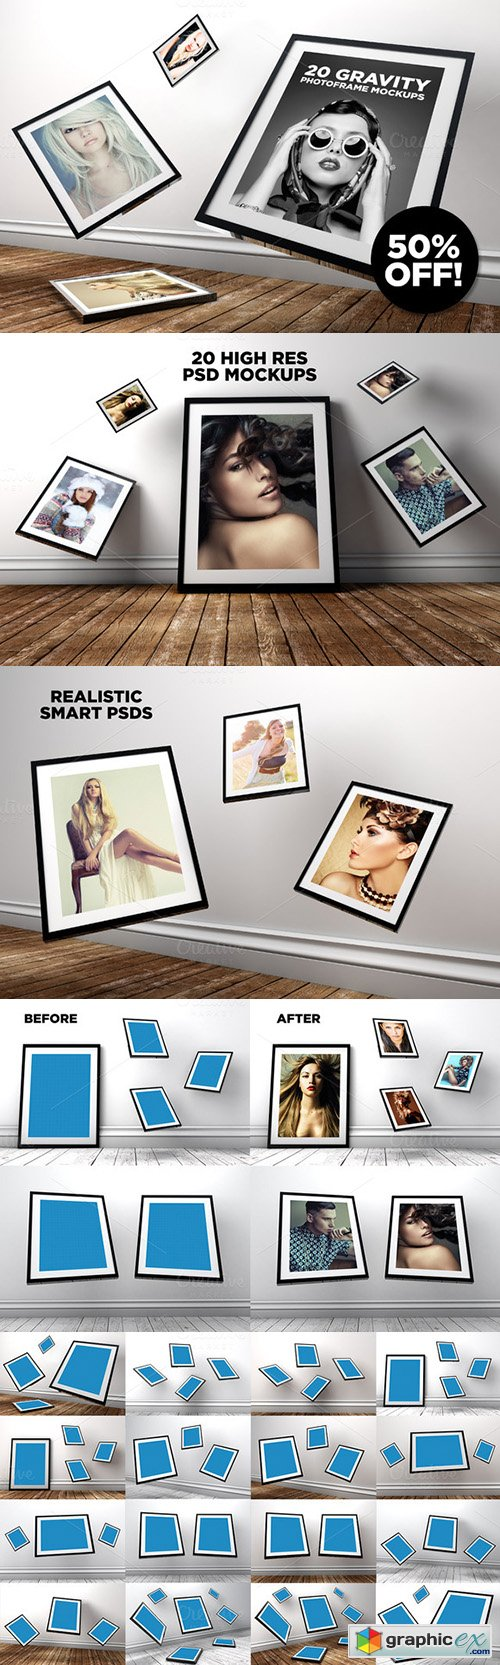 20 Gravity Photo Frame Mockups